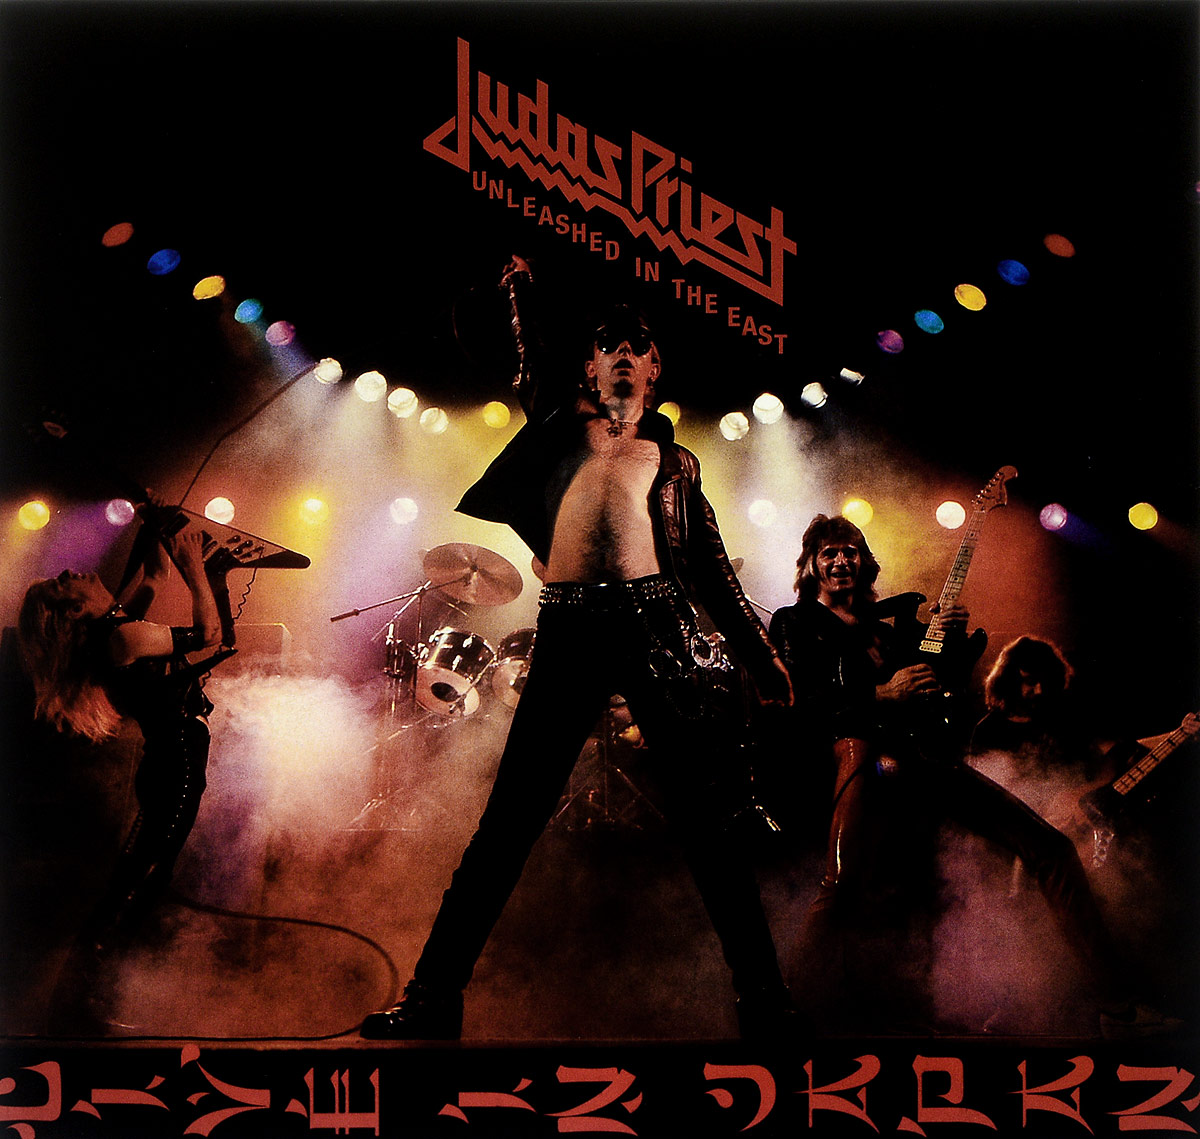 Judas Priest Judas Priest. Unleashed In The East (LP) unleashed